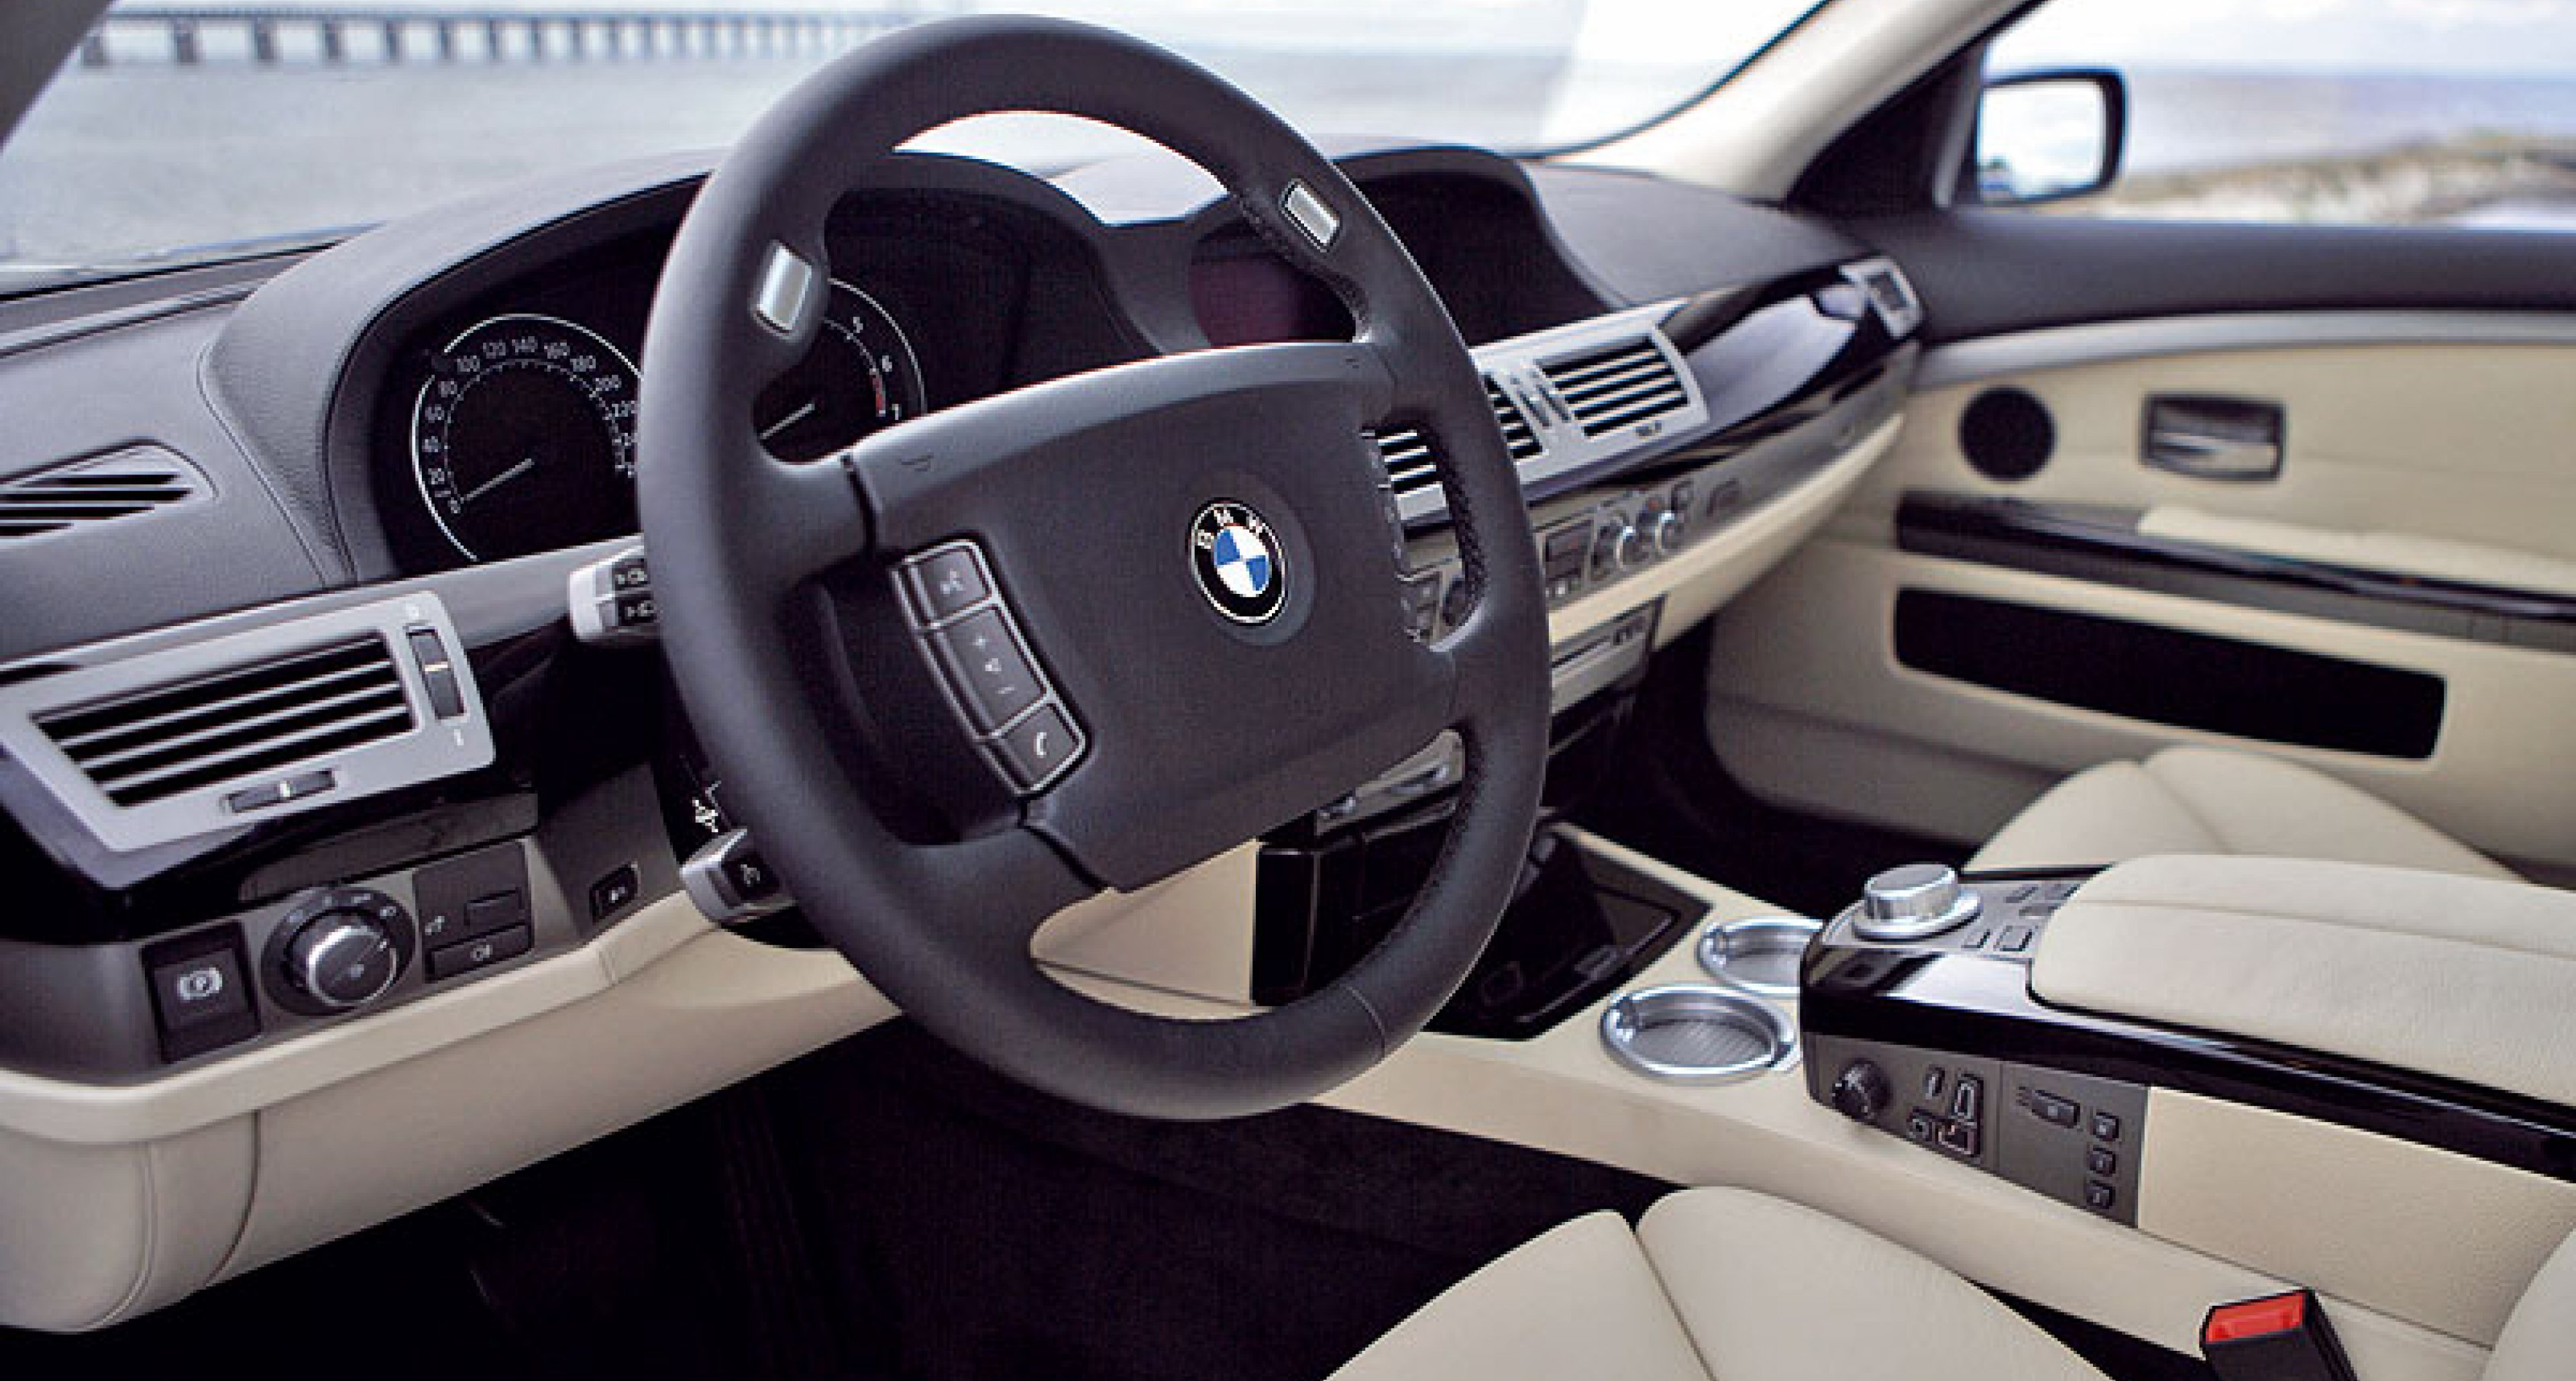 BMW Hydrogen 7 for delivery in 2007